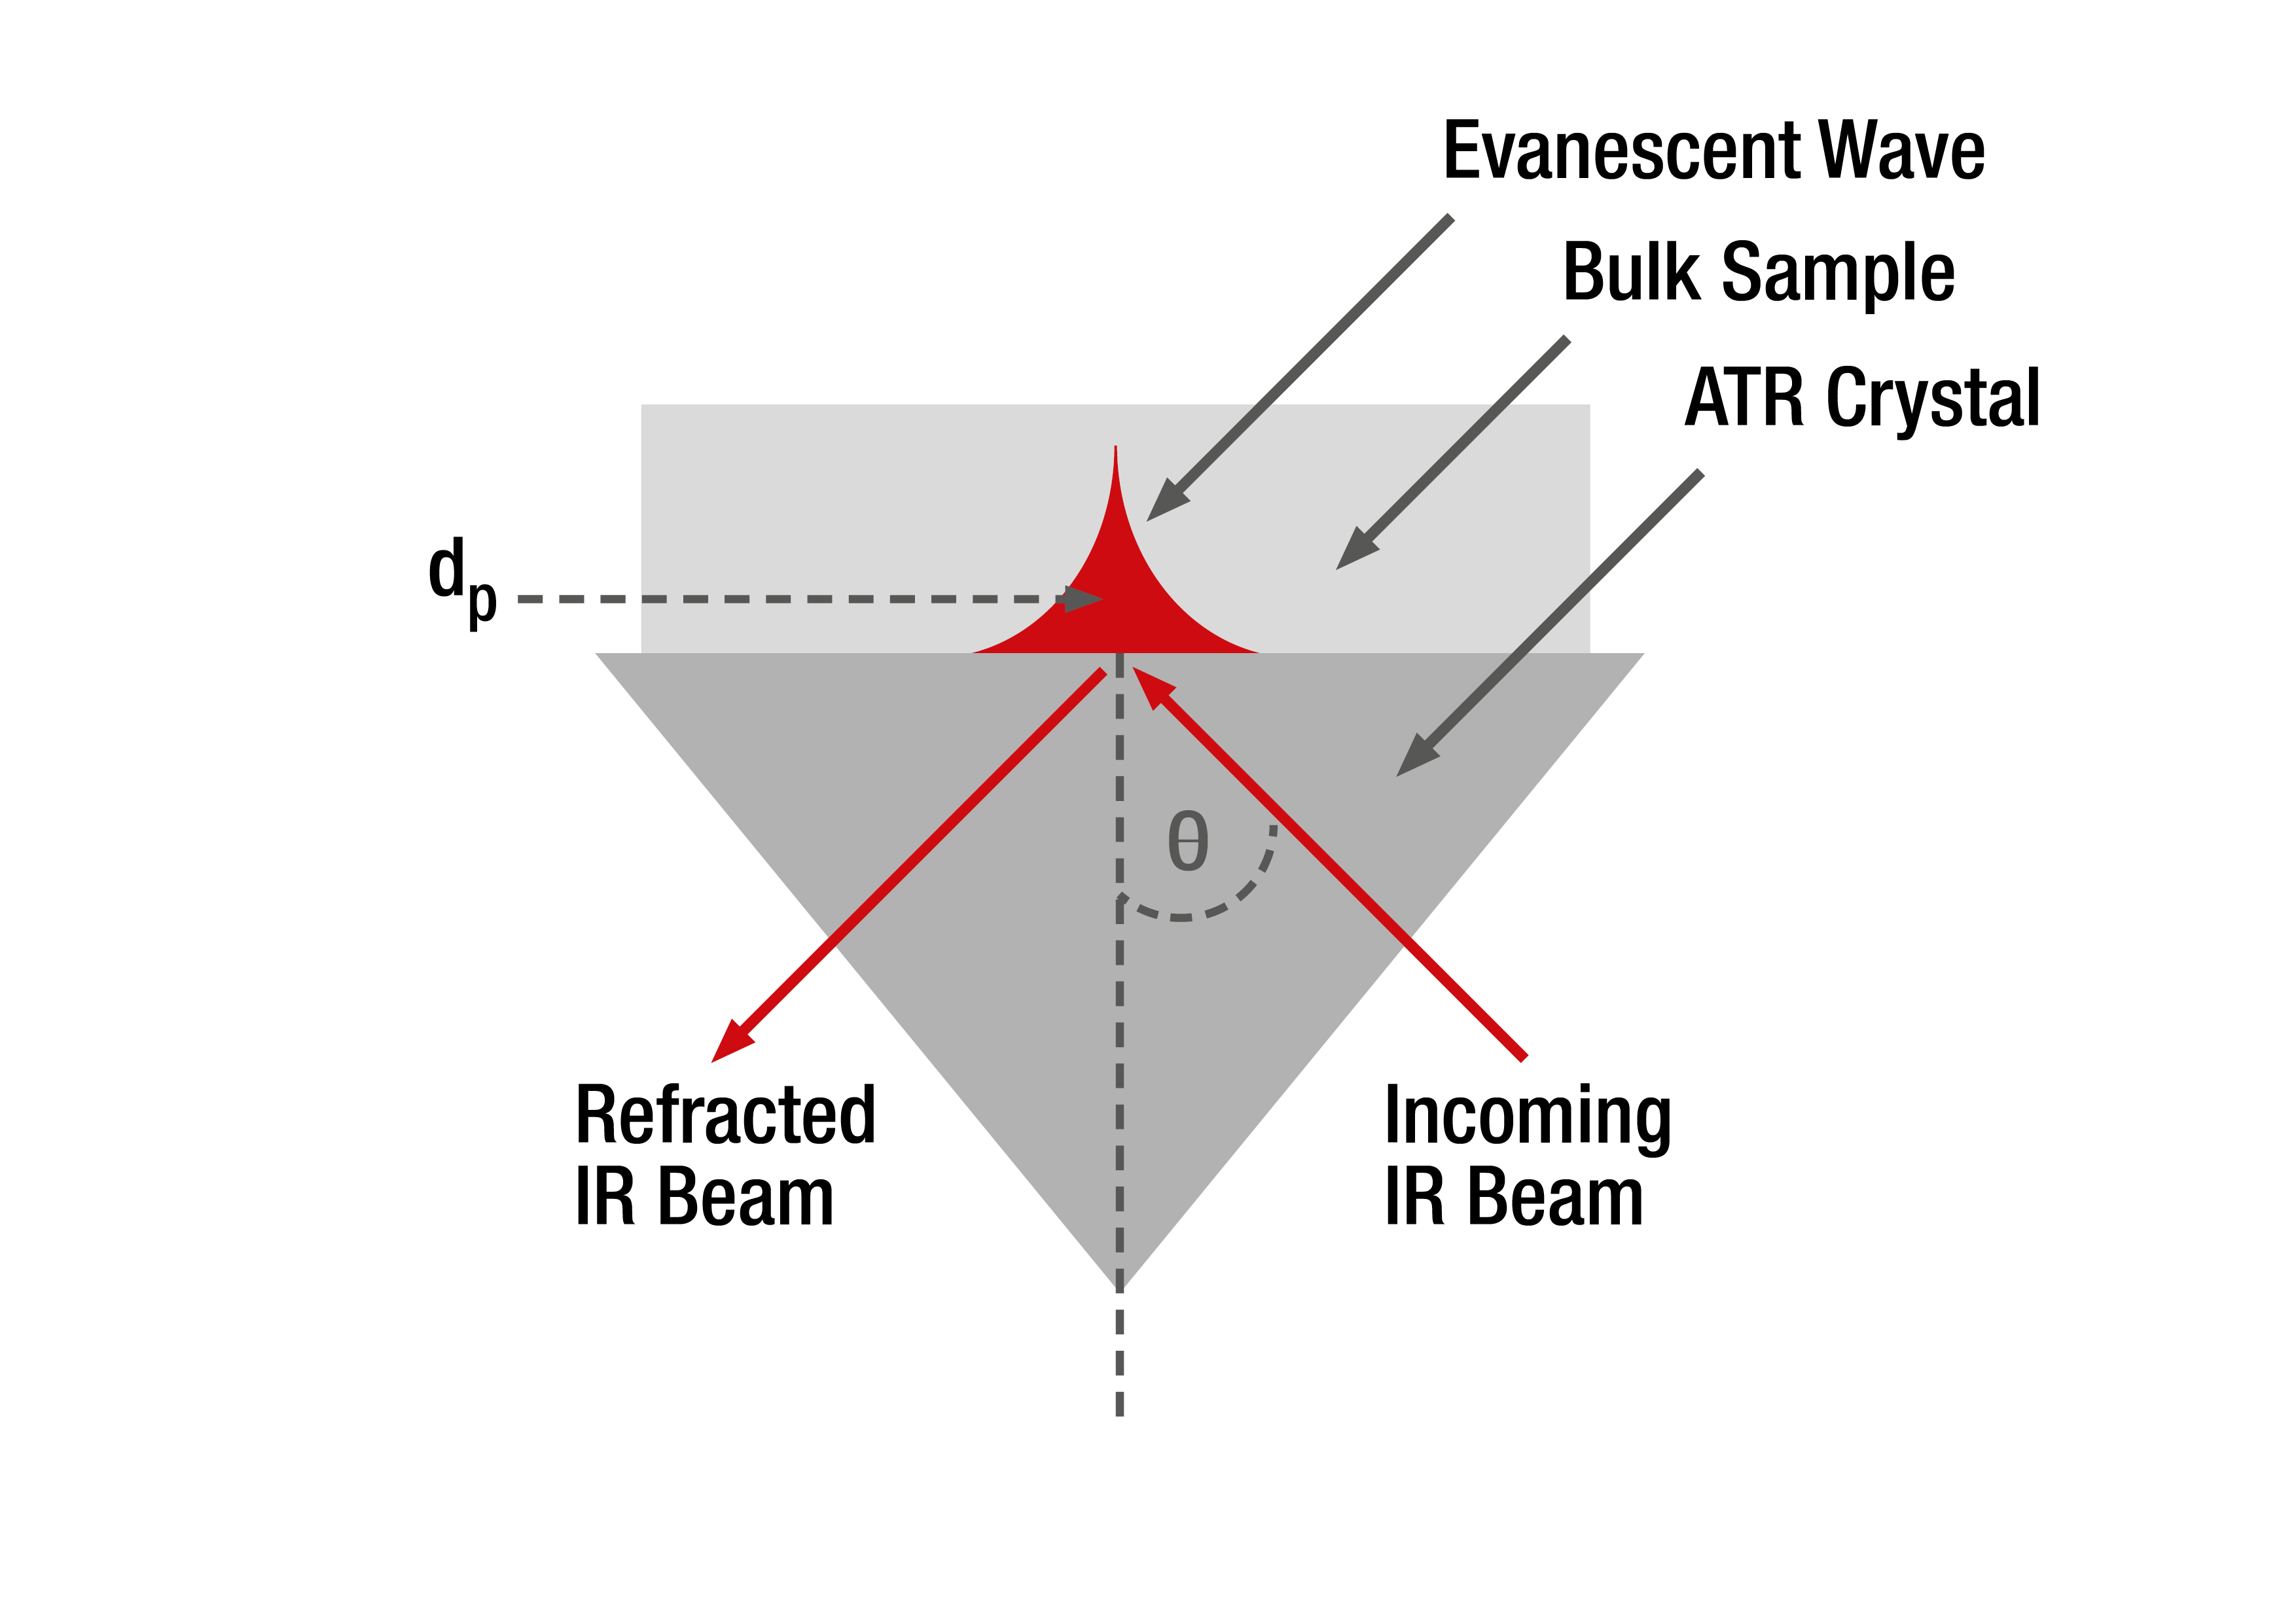 Figure 2 Evanescent wave resulting from total internal reflection